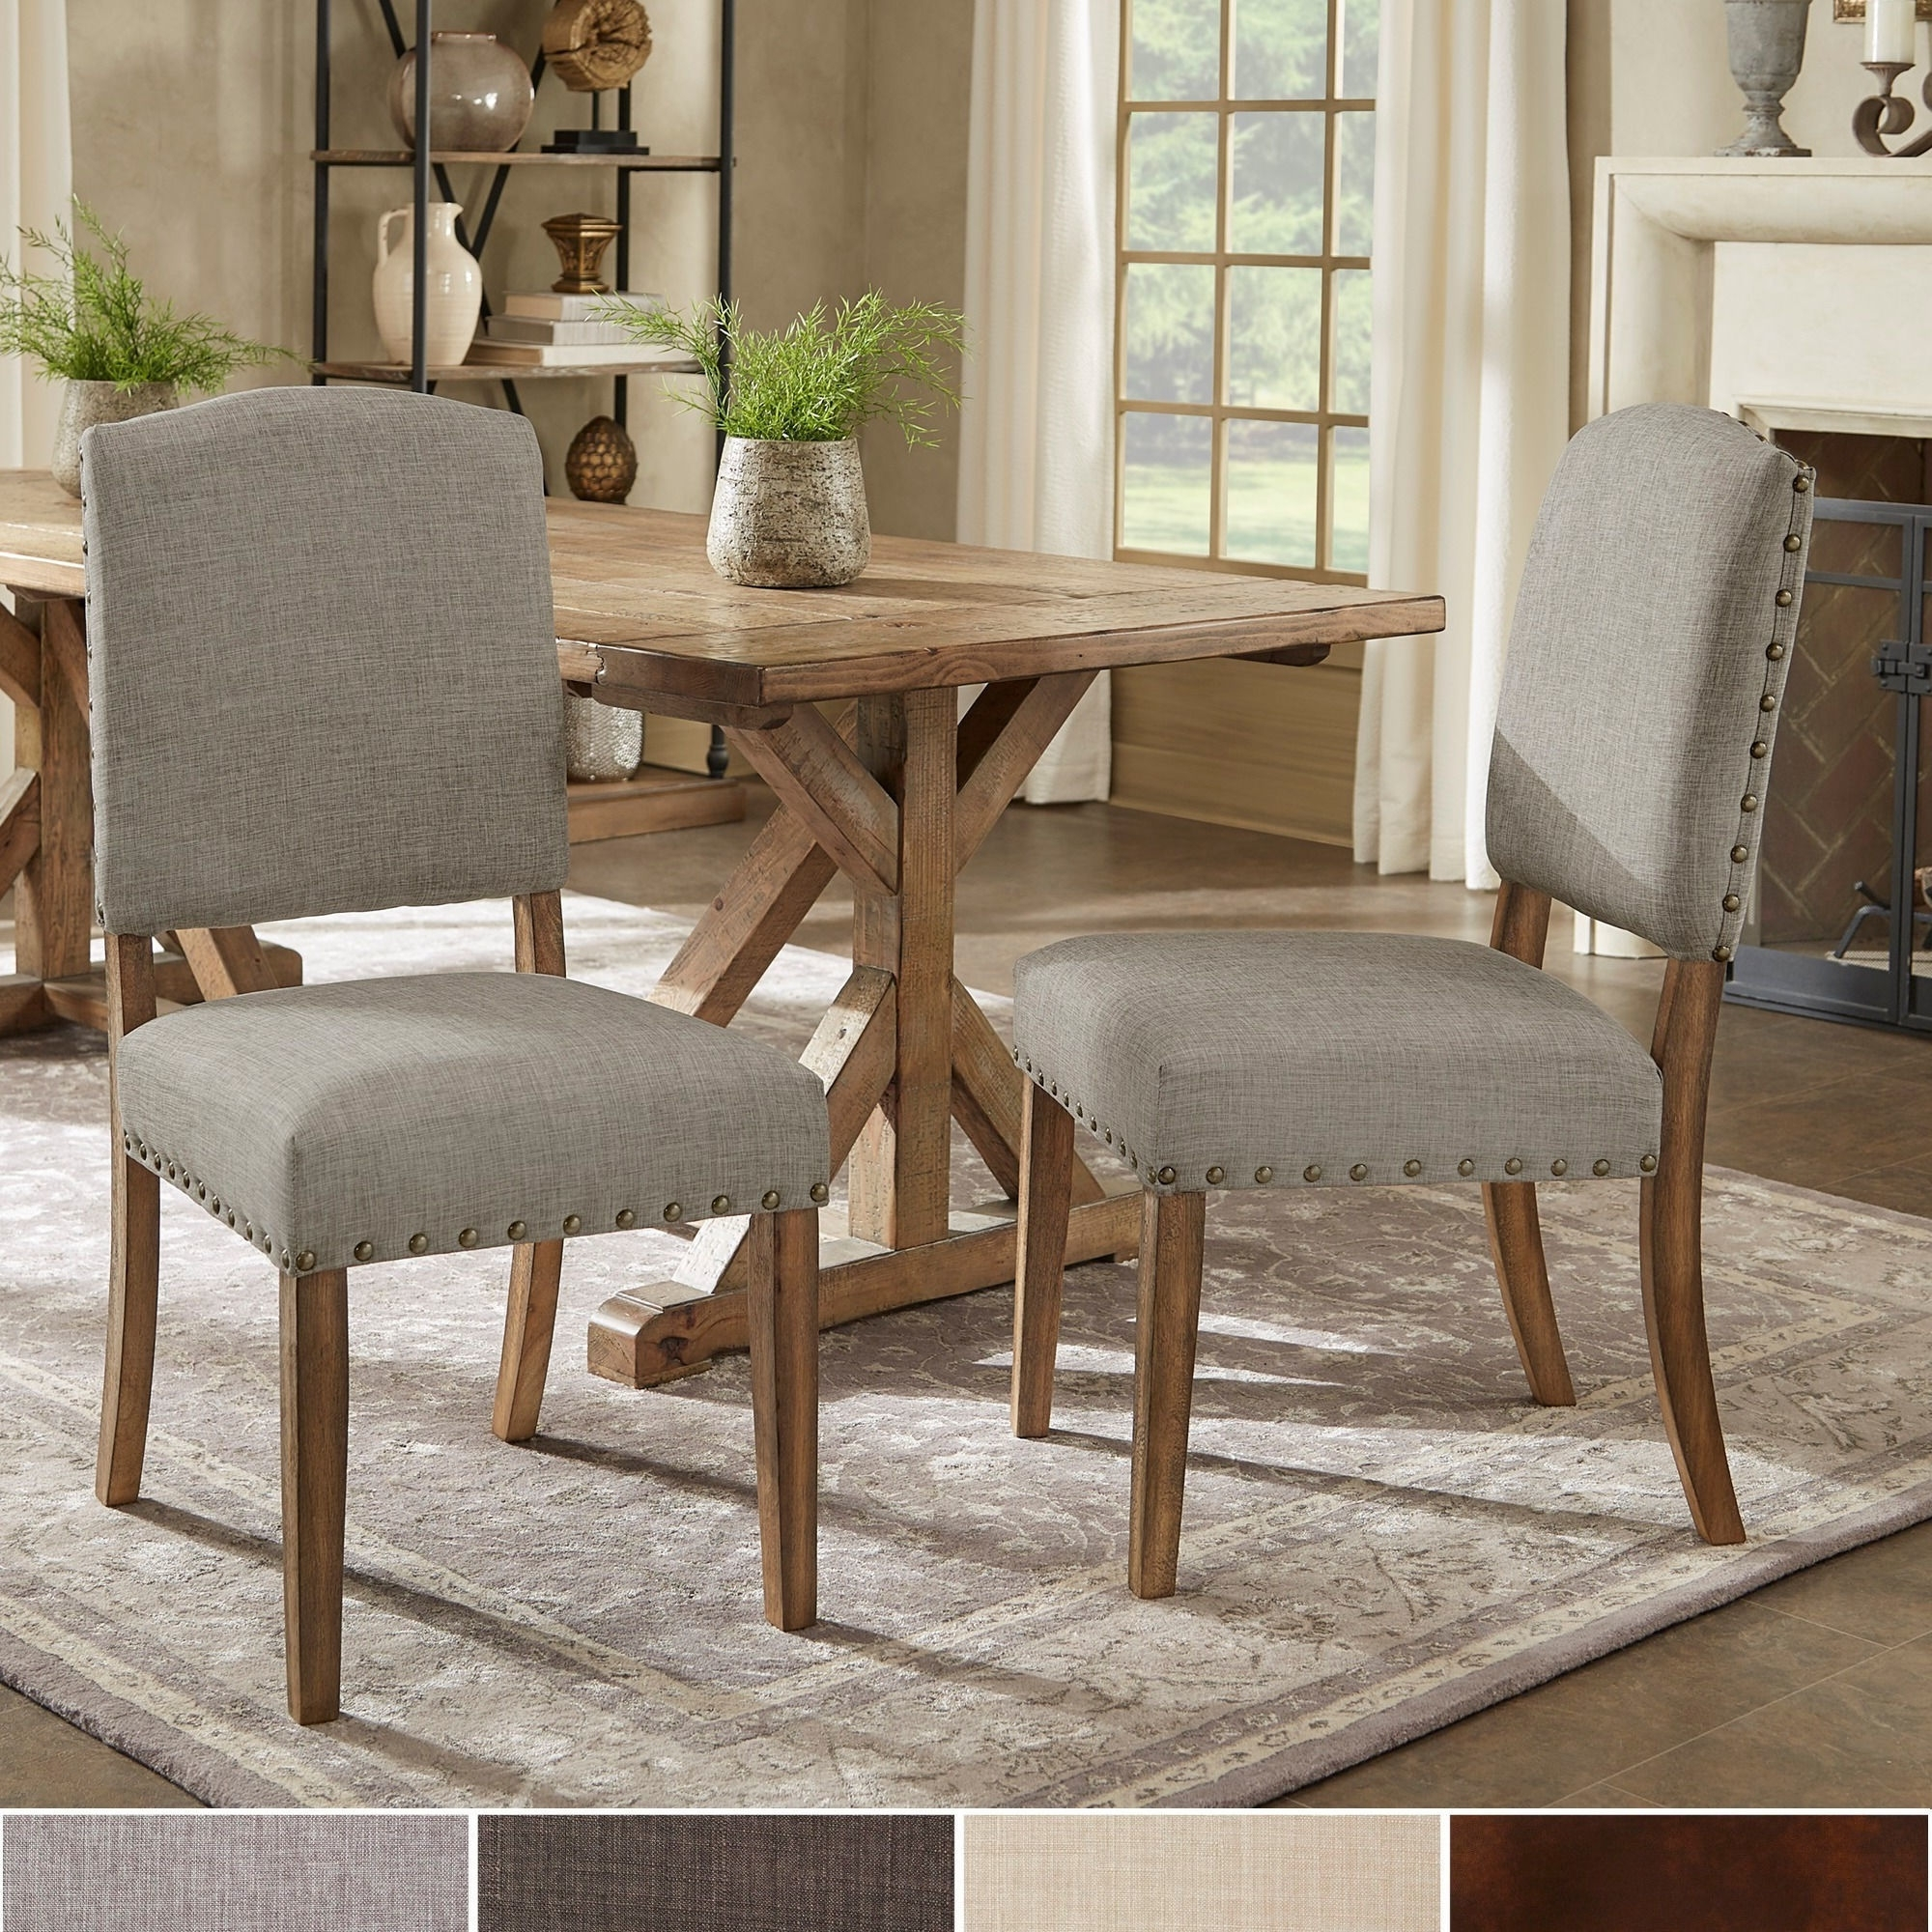 Well Liked Shop Benchwright Premium Nailhead Upholstered Dining Chairs (Set Of In Candice Ii 5 Piece Round Dining Sets (View 25 of 25)